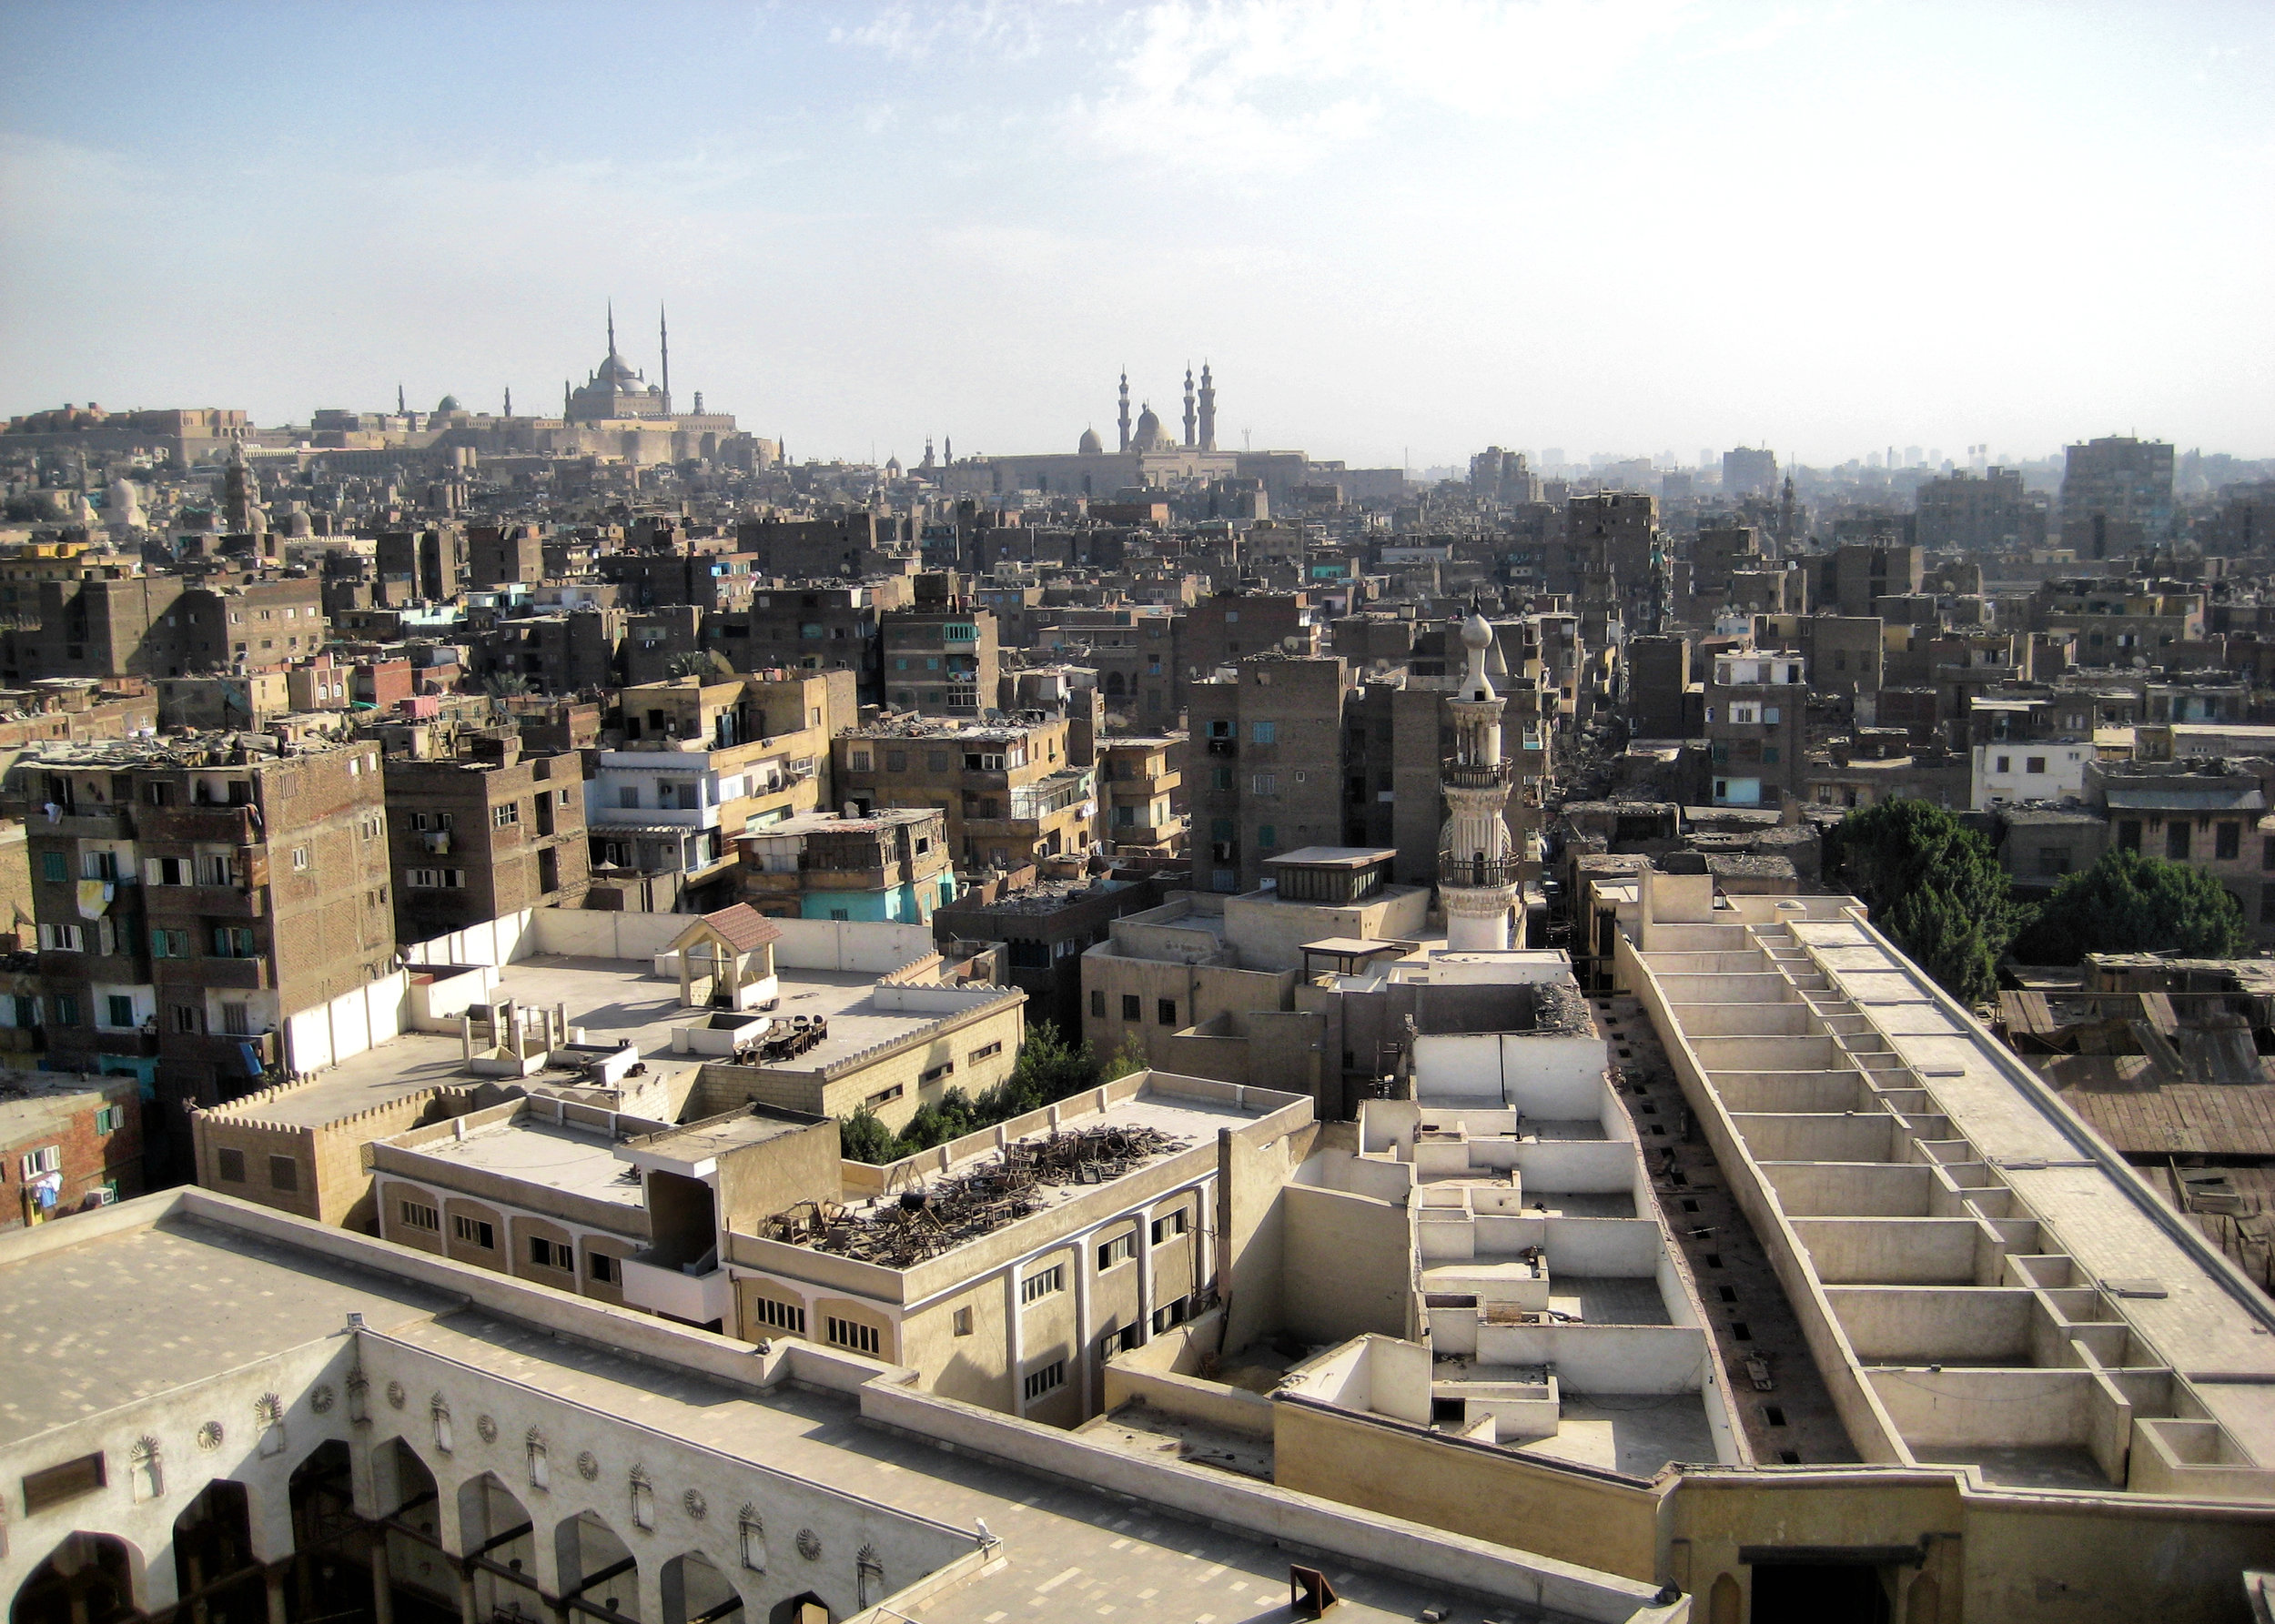 Looking out over Old Cairo. Image credit:  Francisco Anzola / Creative Commons